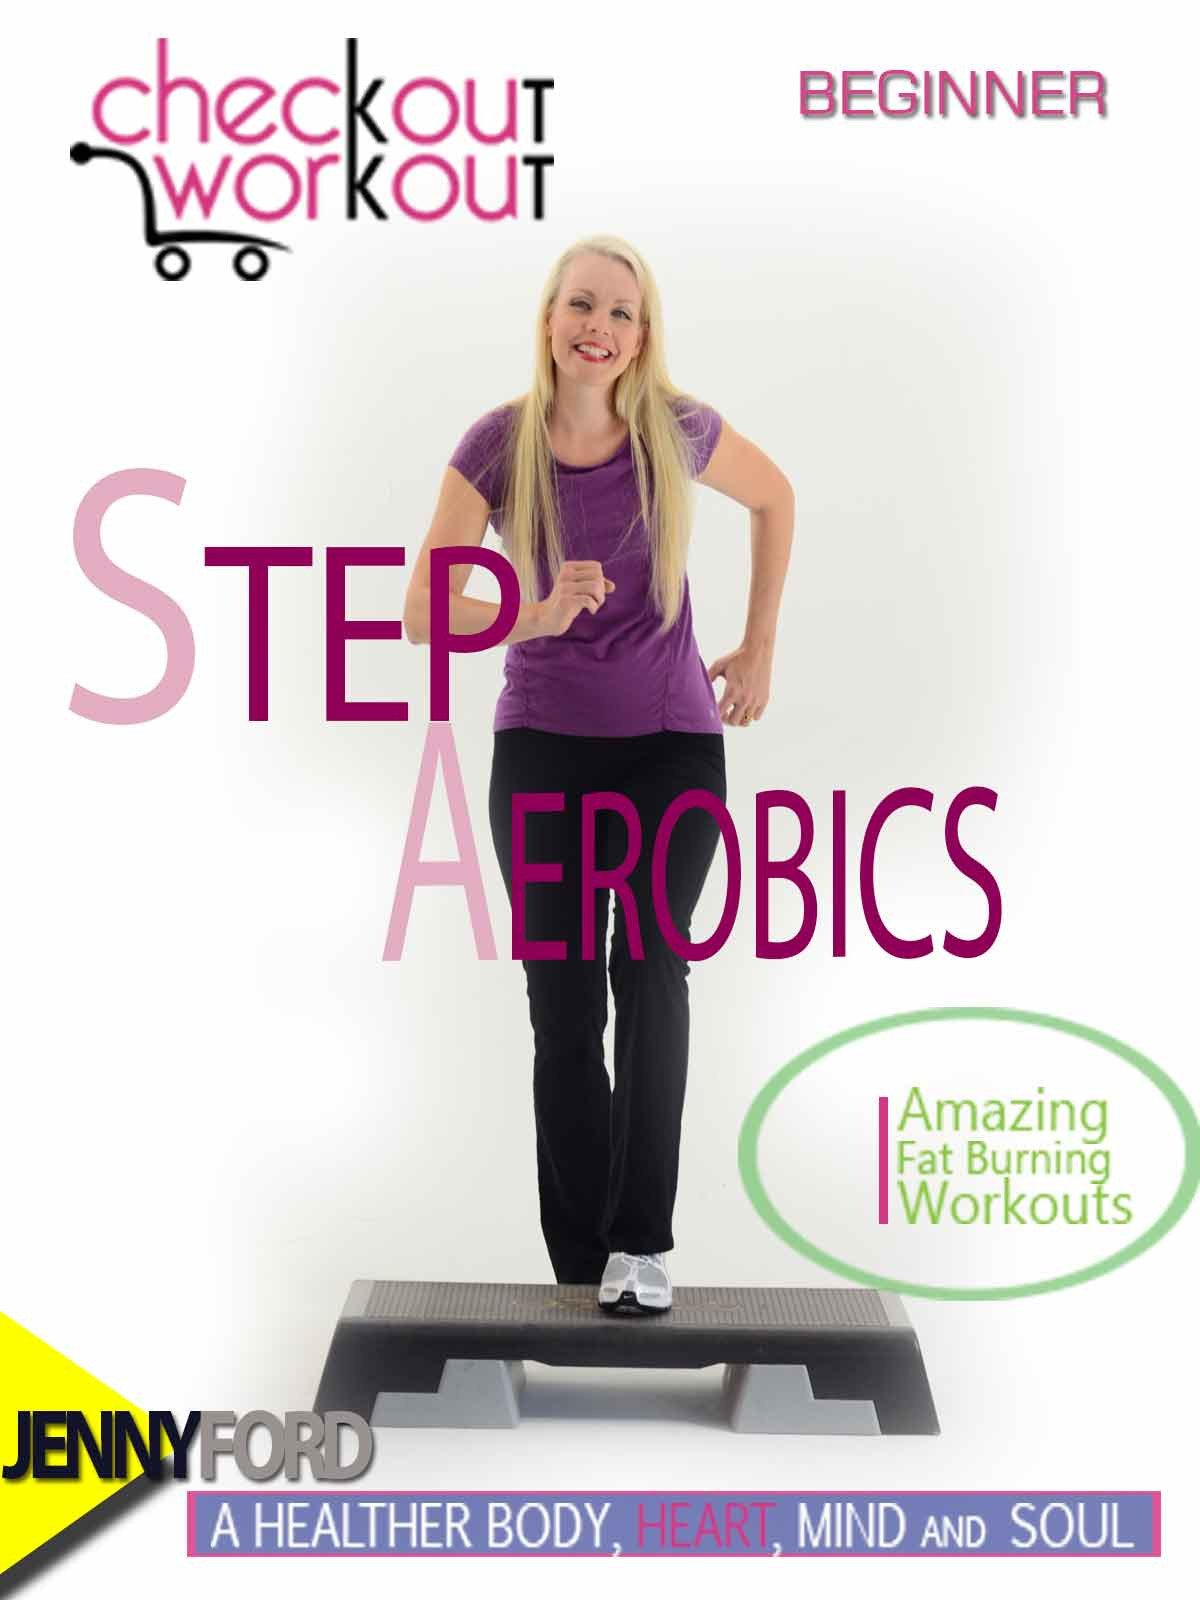 Watch Step Aerobics Beginner Jenny Ford Prime Video